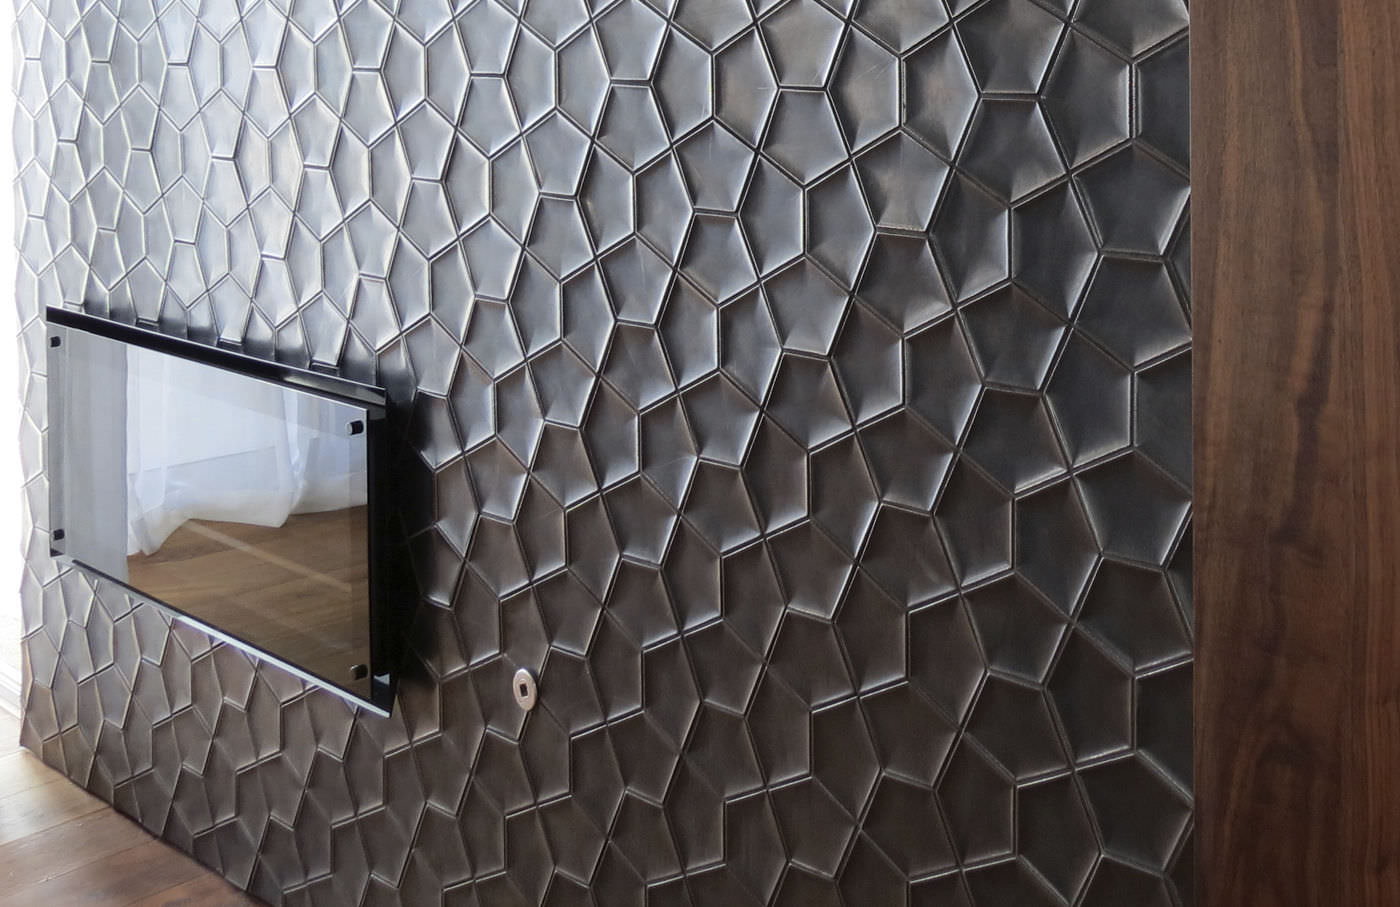 Indoor Tile Wall Ceramic Geometric Pattern Penta 3d Daniel